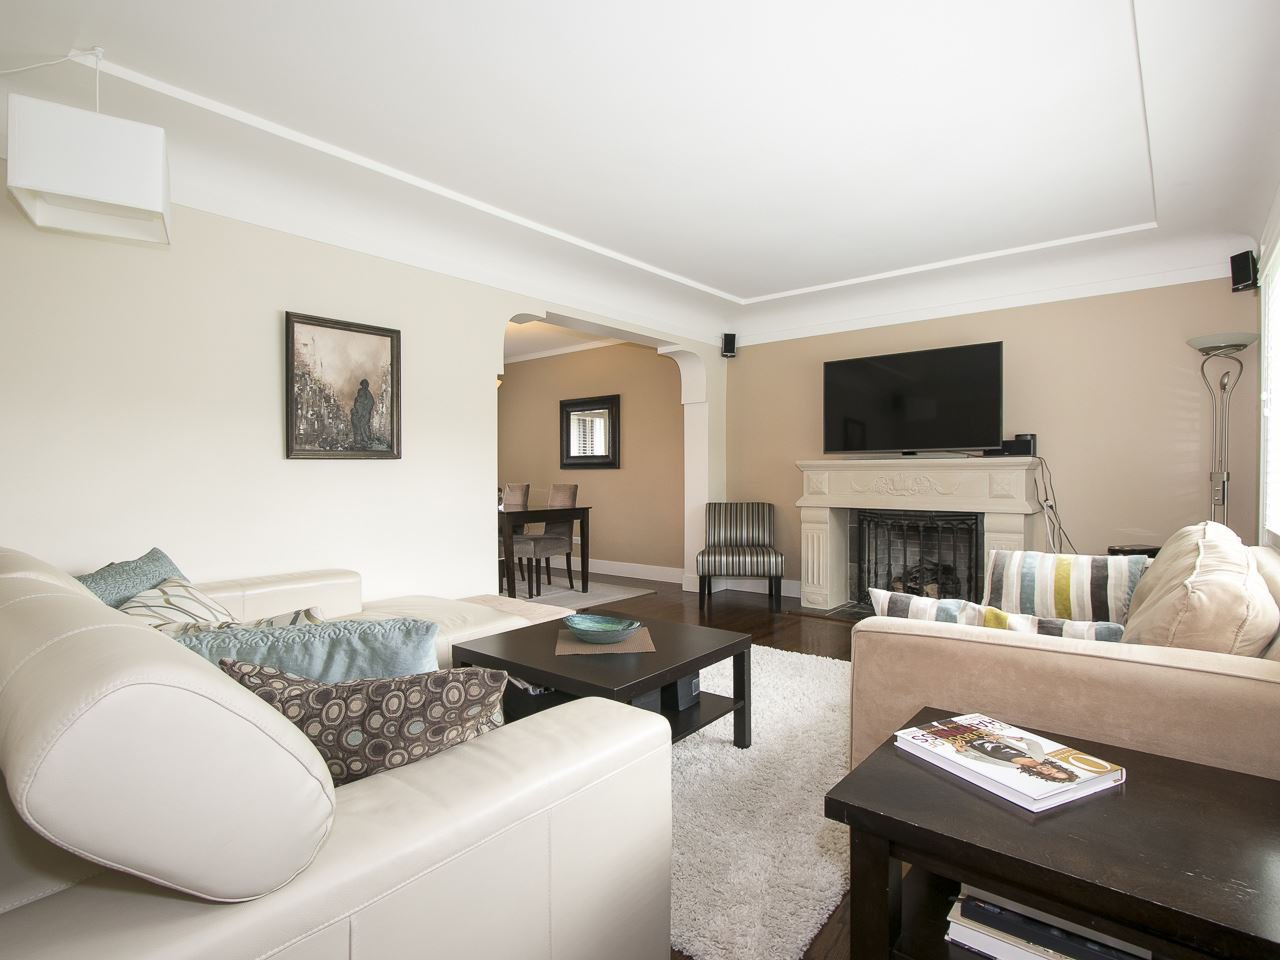 Photo 4: Photos: 731 W KING EDWARD AVENUE in Vancouver: Cambie House for sale (Vancouver West)  : MLS®# R2204992